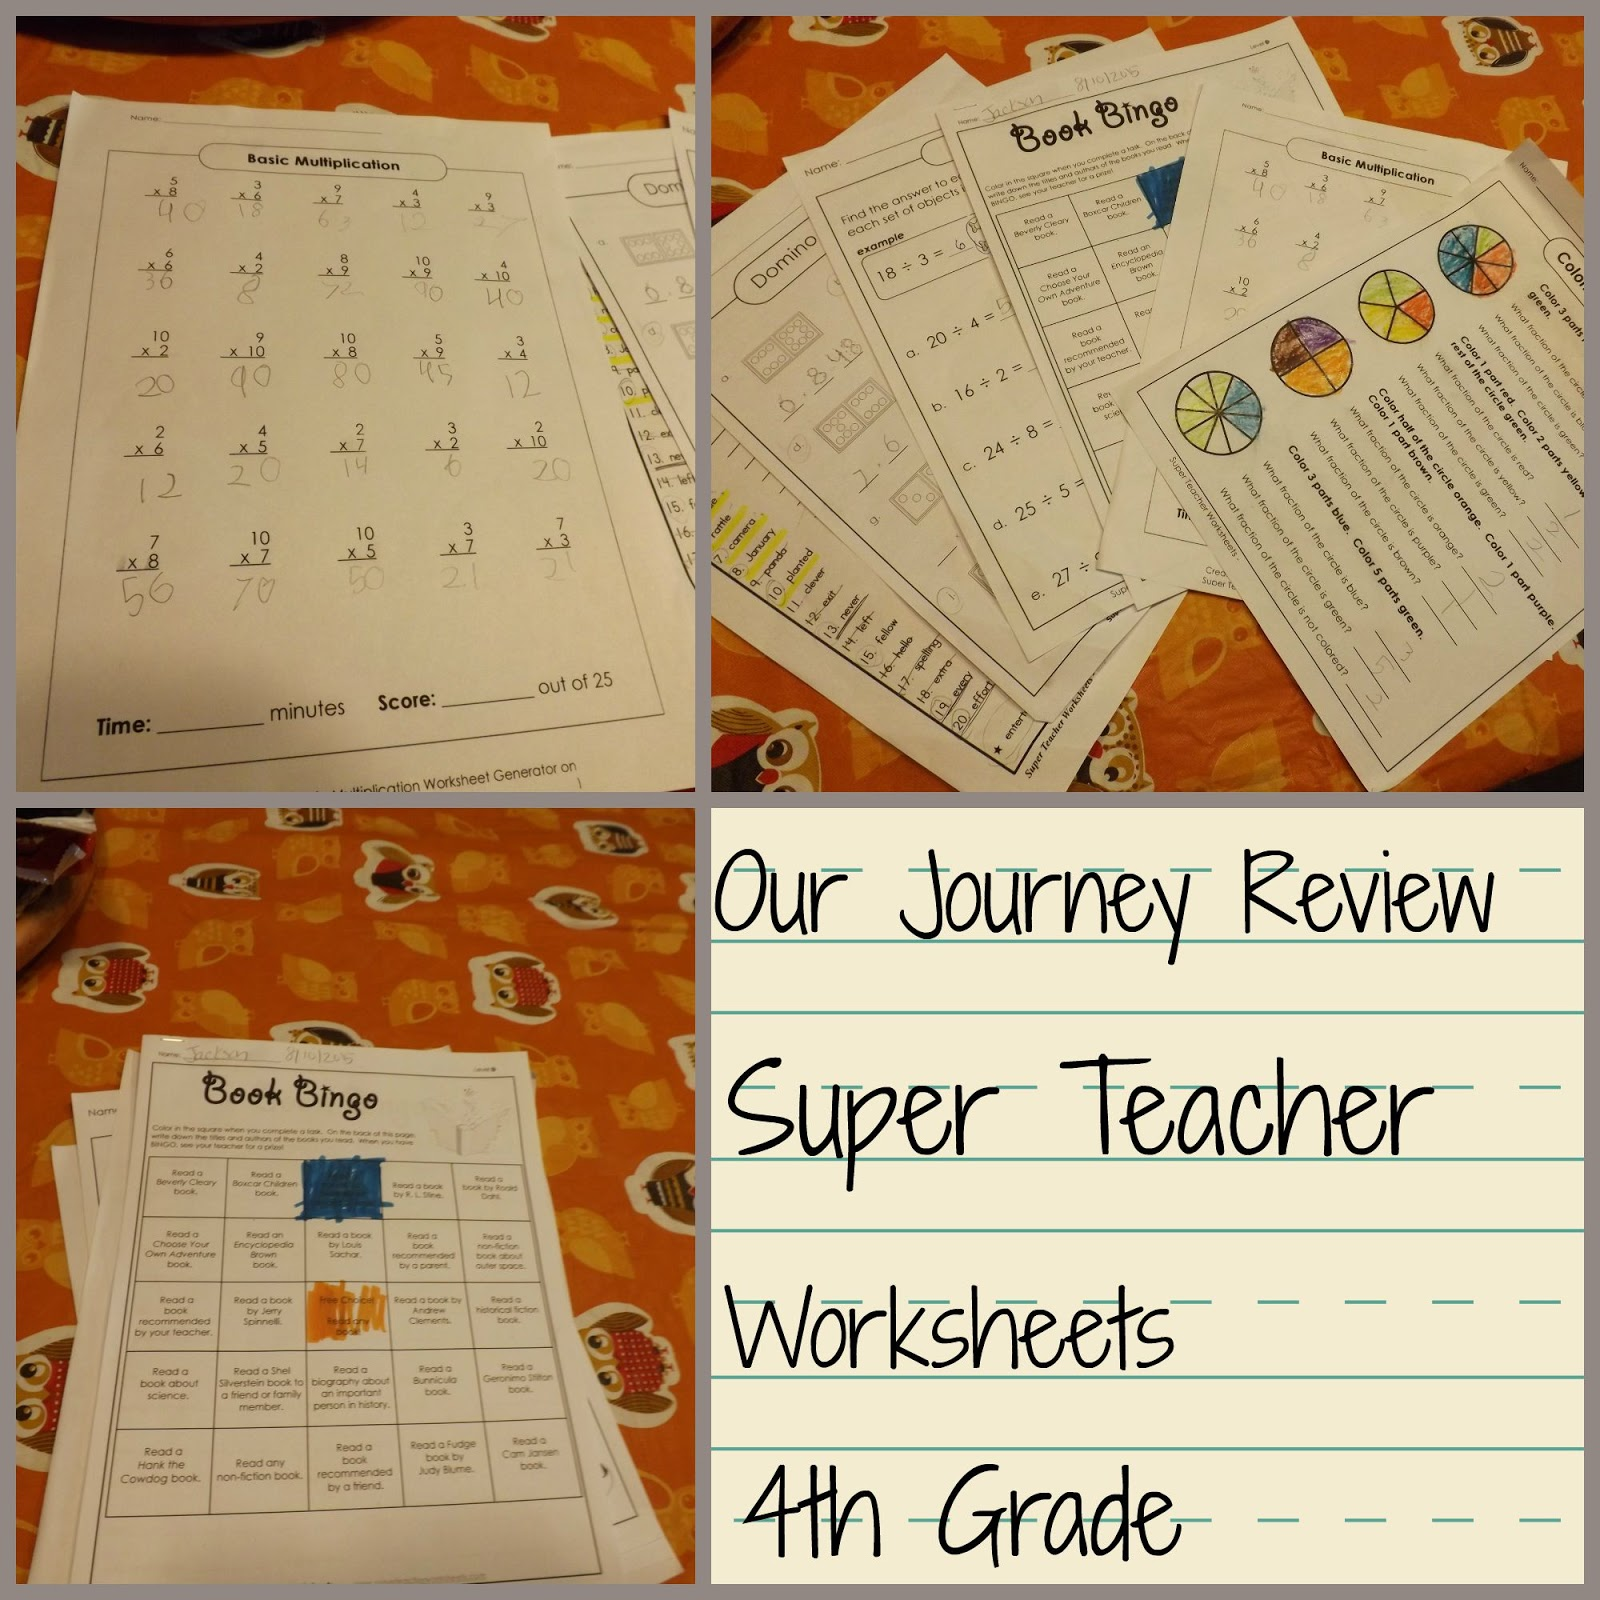 Super Teacher Worksheets Division Answer Key